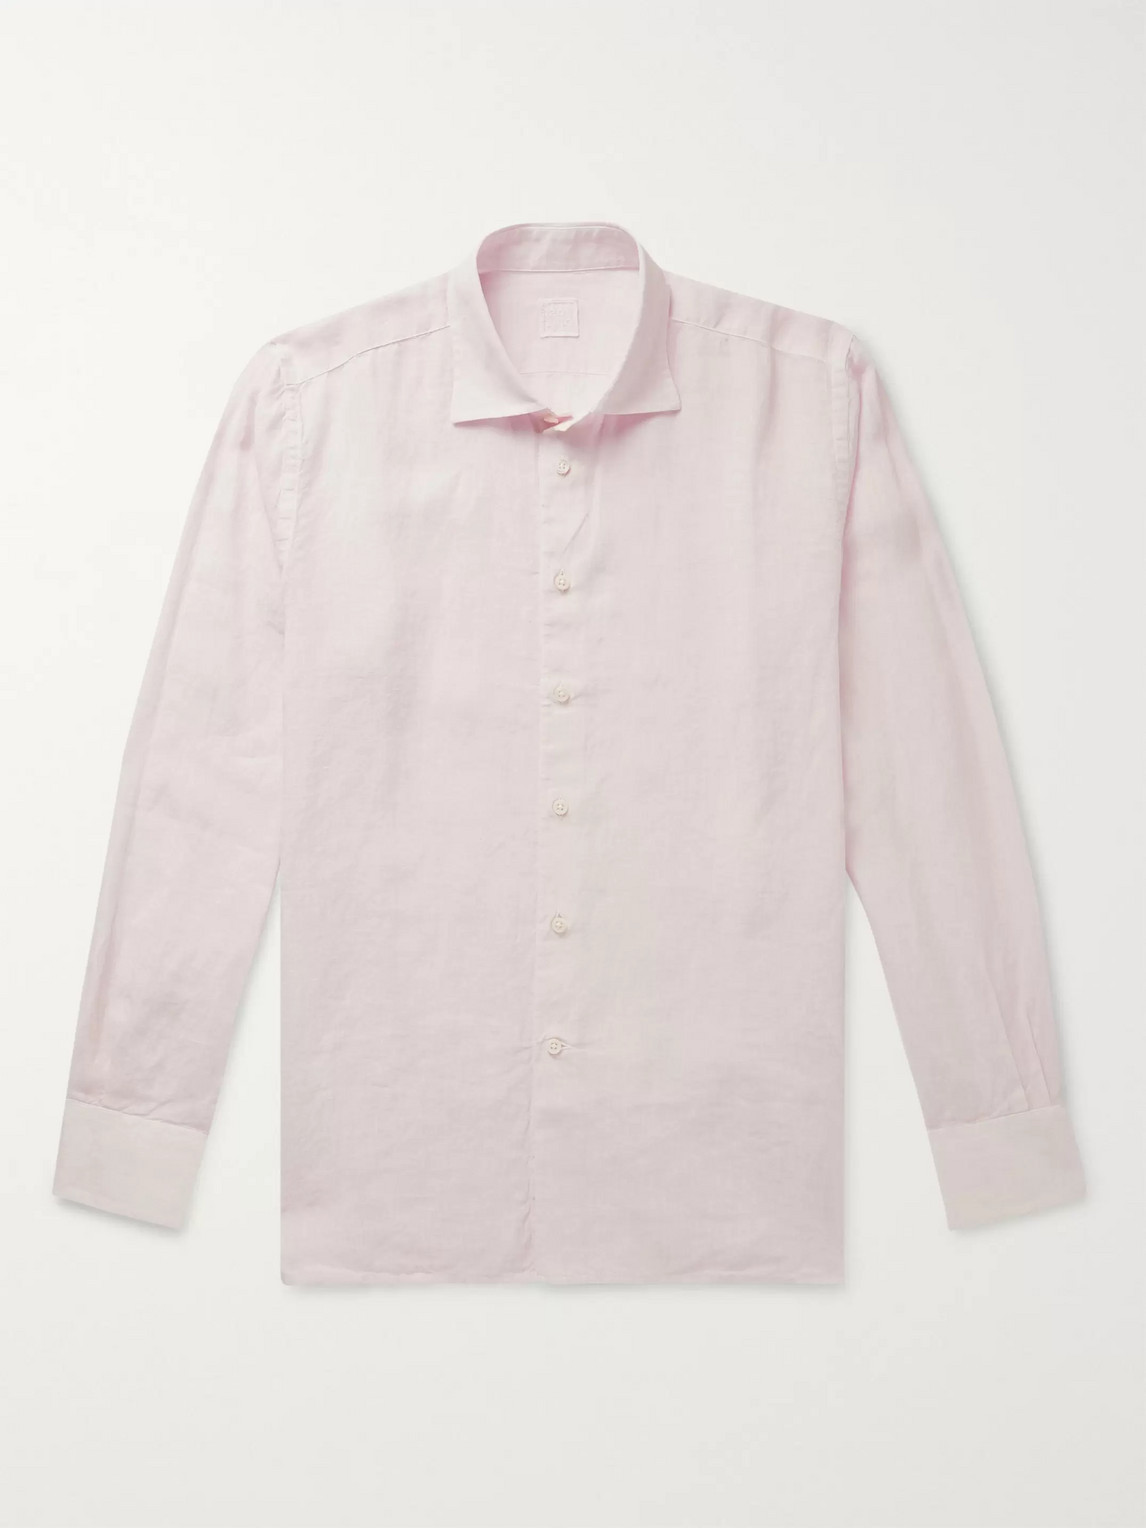 120% Slim-fit Garment-dyed Linen Shirt In Pink